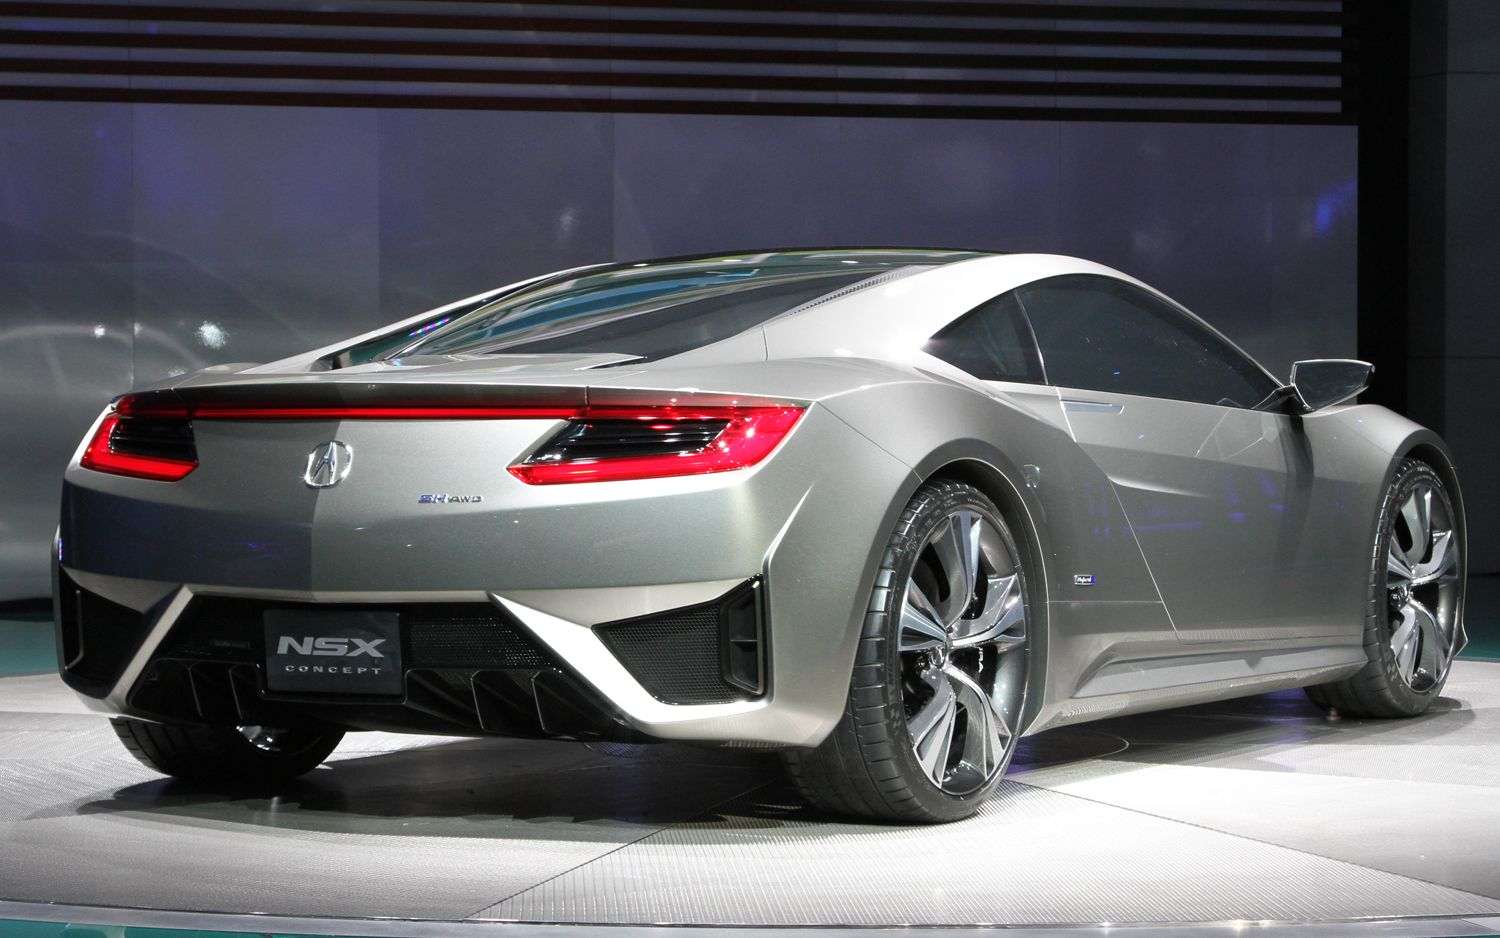 Captivating Honda Has Been Developing The 2015 ...